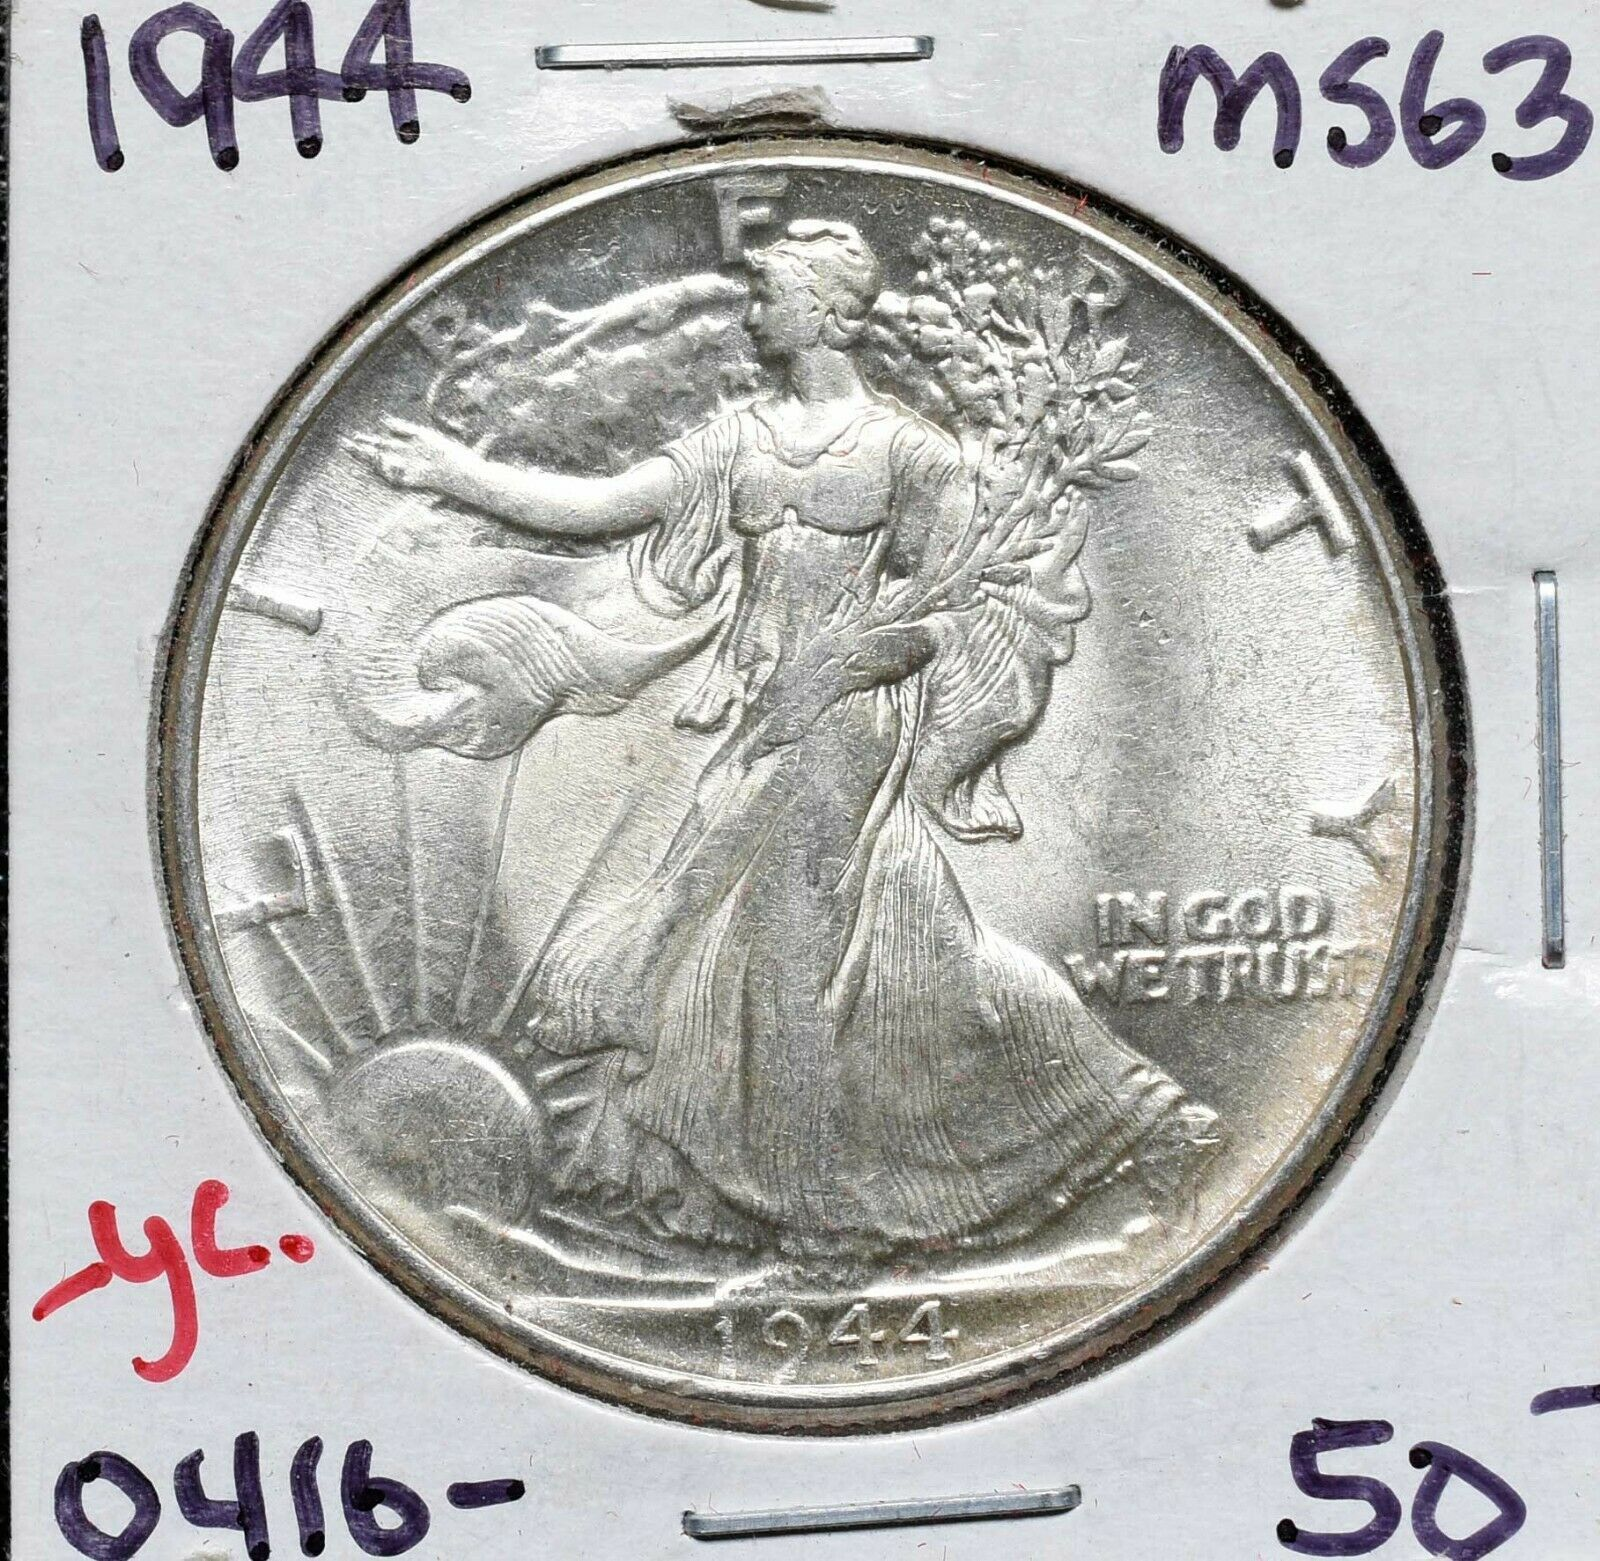 1944 Walking Liberty Half Dollar 90% Silver Coin Lot# A 576